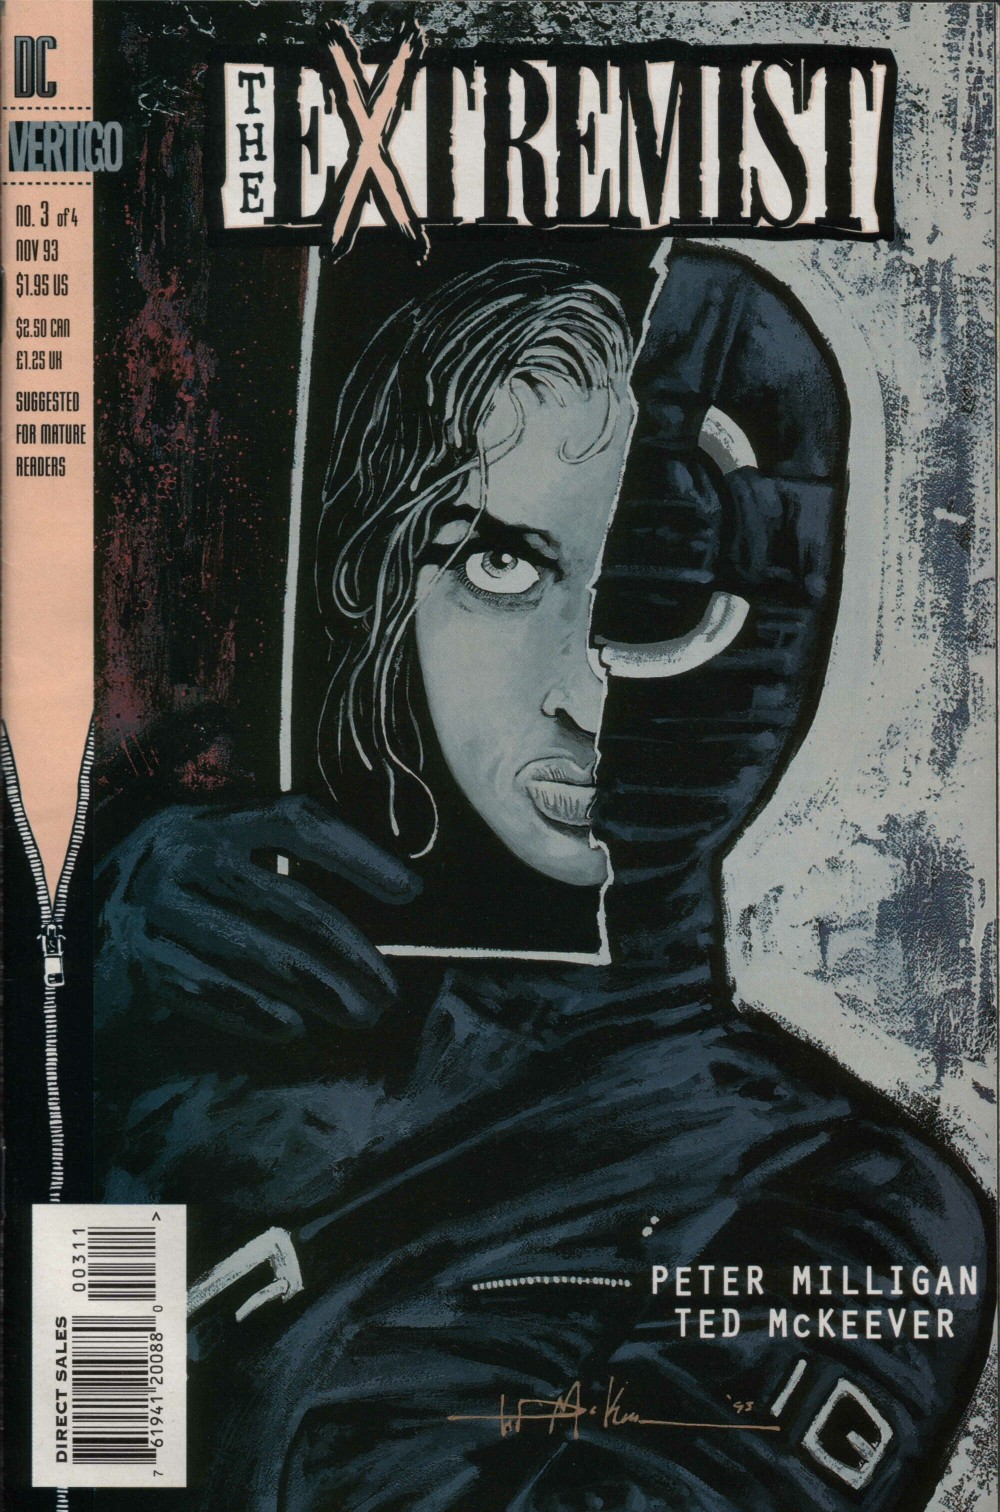 Extremist, The [DC Vertigo] Mini 1 0003.jpg